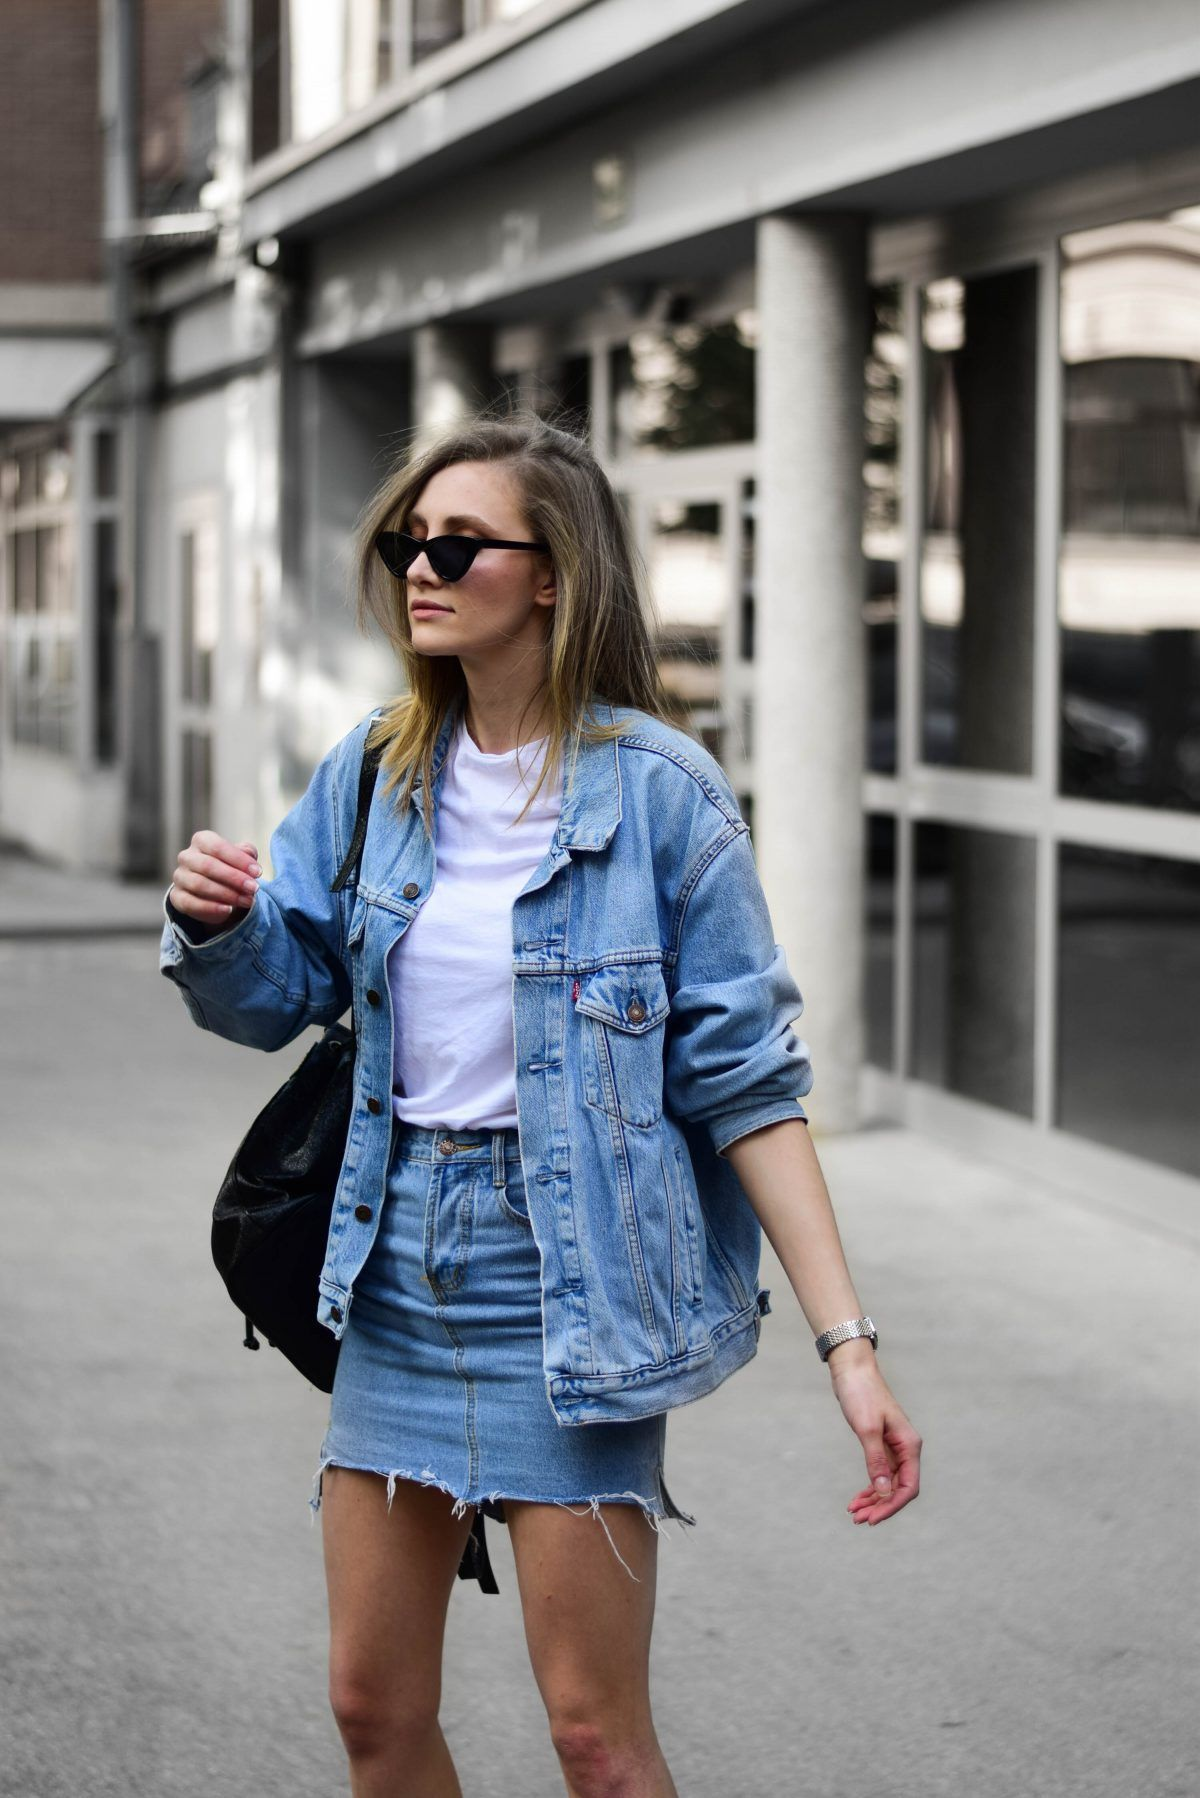 8728fa25d9 Double denim strikes again! I had to do a combo with denim skirt, vintage  jacket and ultra large Balenciaga Triple S dupes! These sneakers look so  good with ...